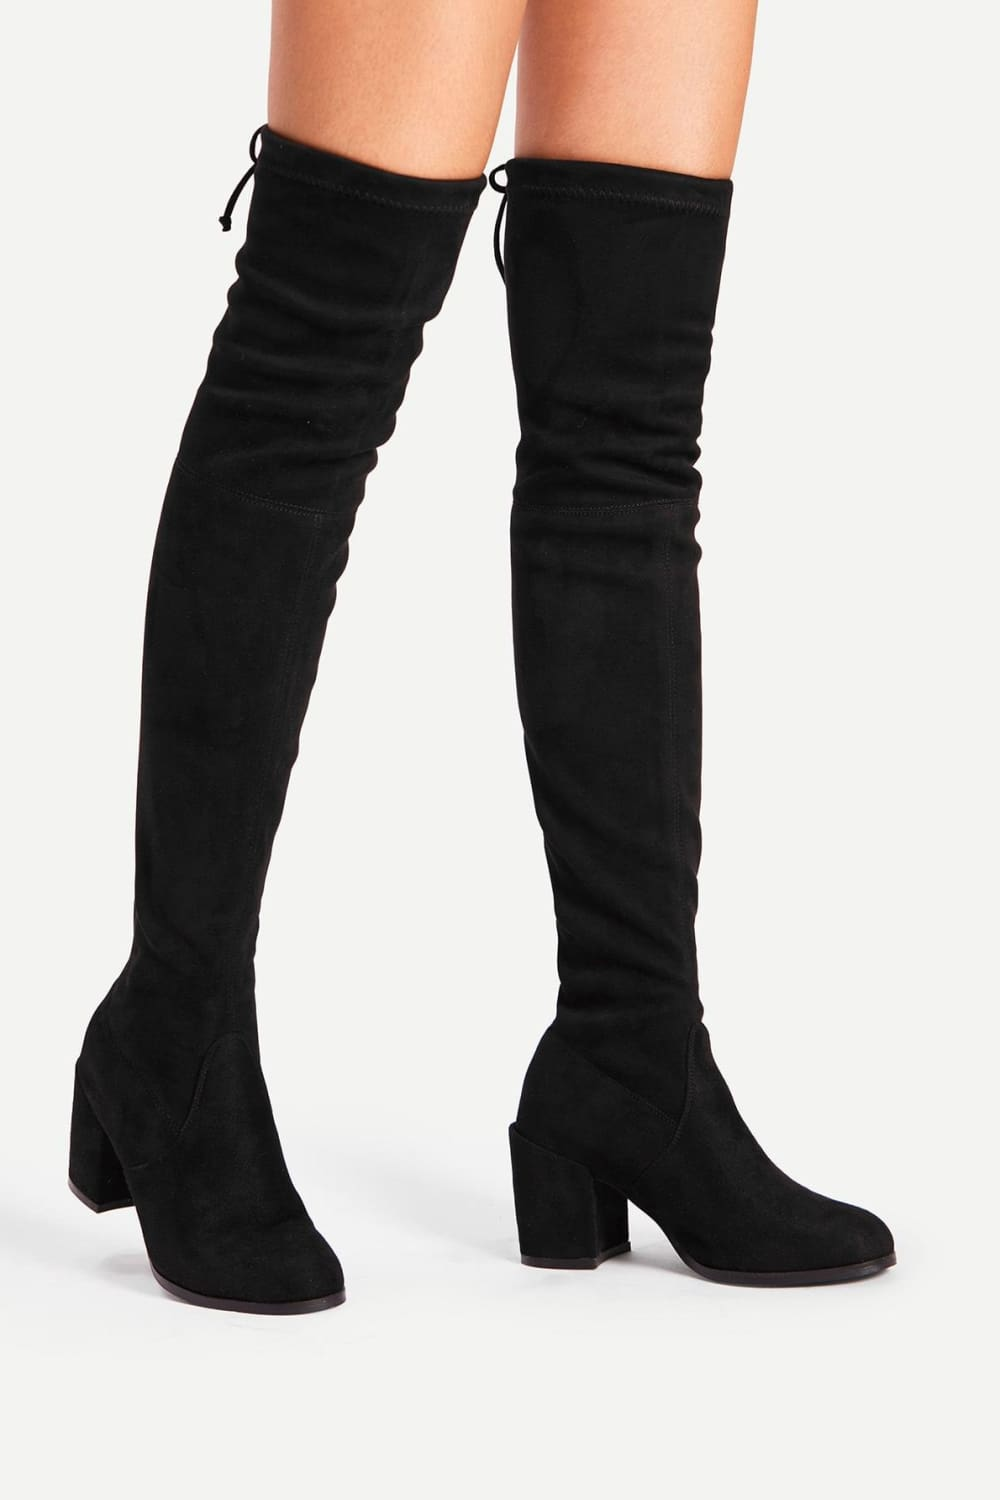 Giselle Black Faux Suede Over the Knee Boots - Shoes - Evan & Jane